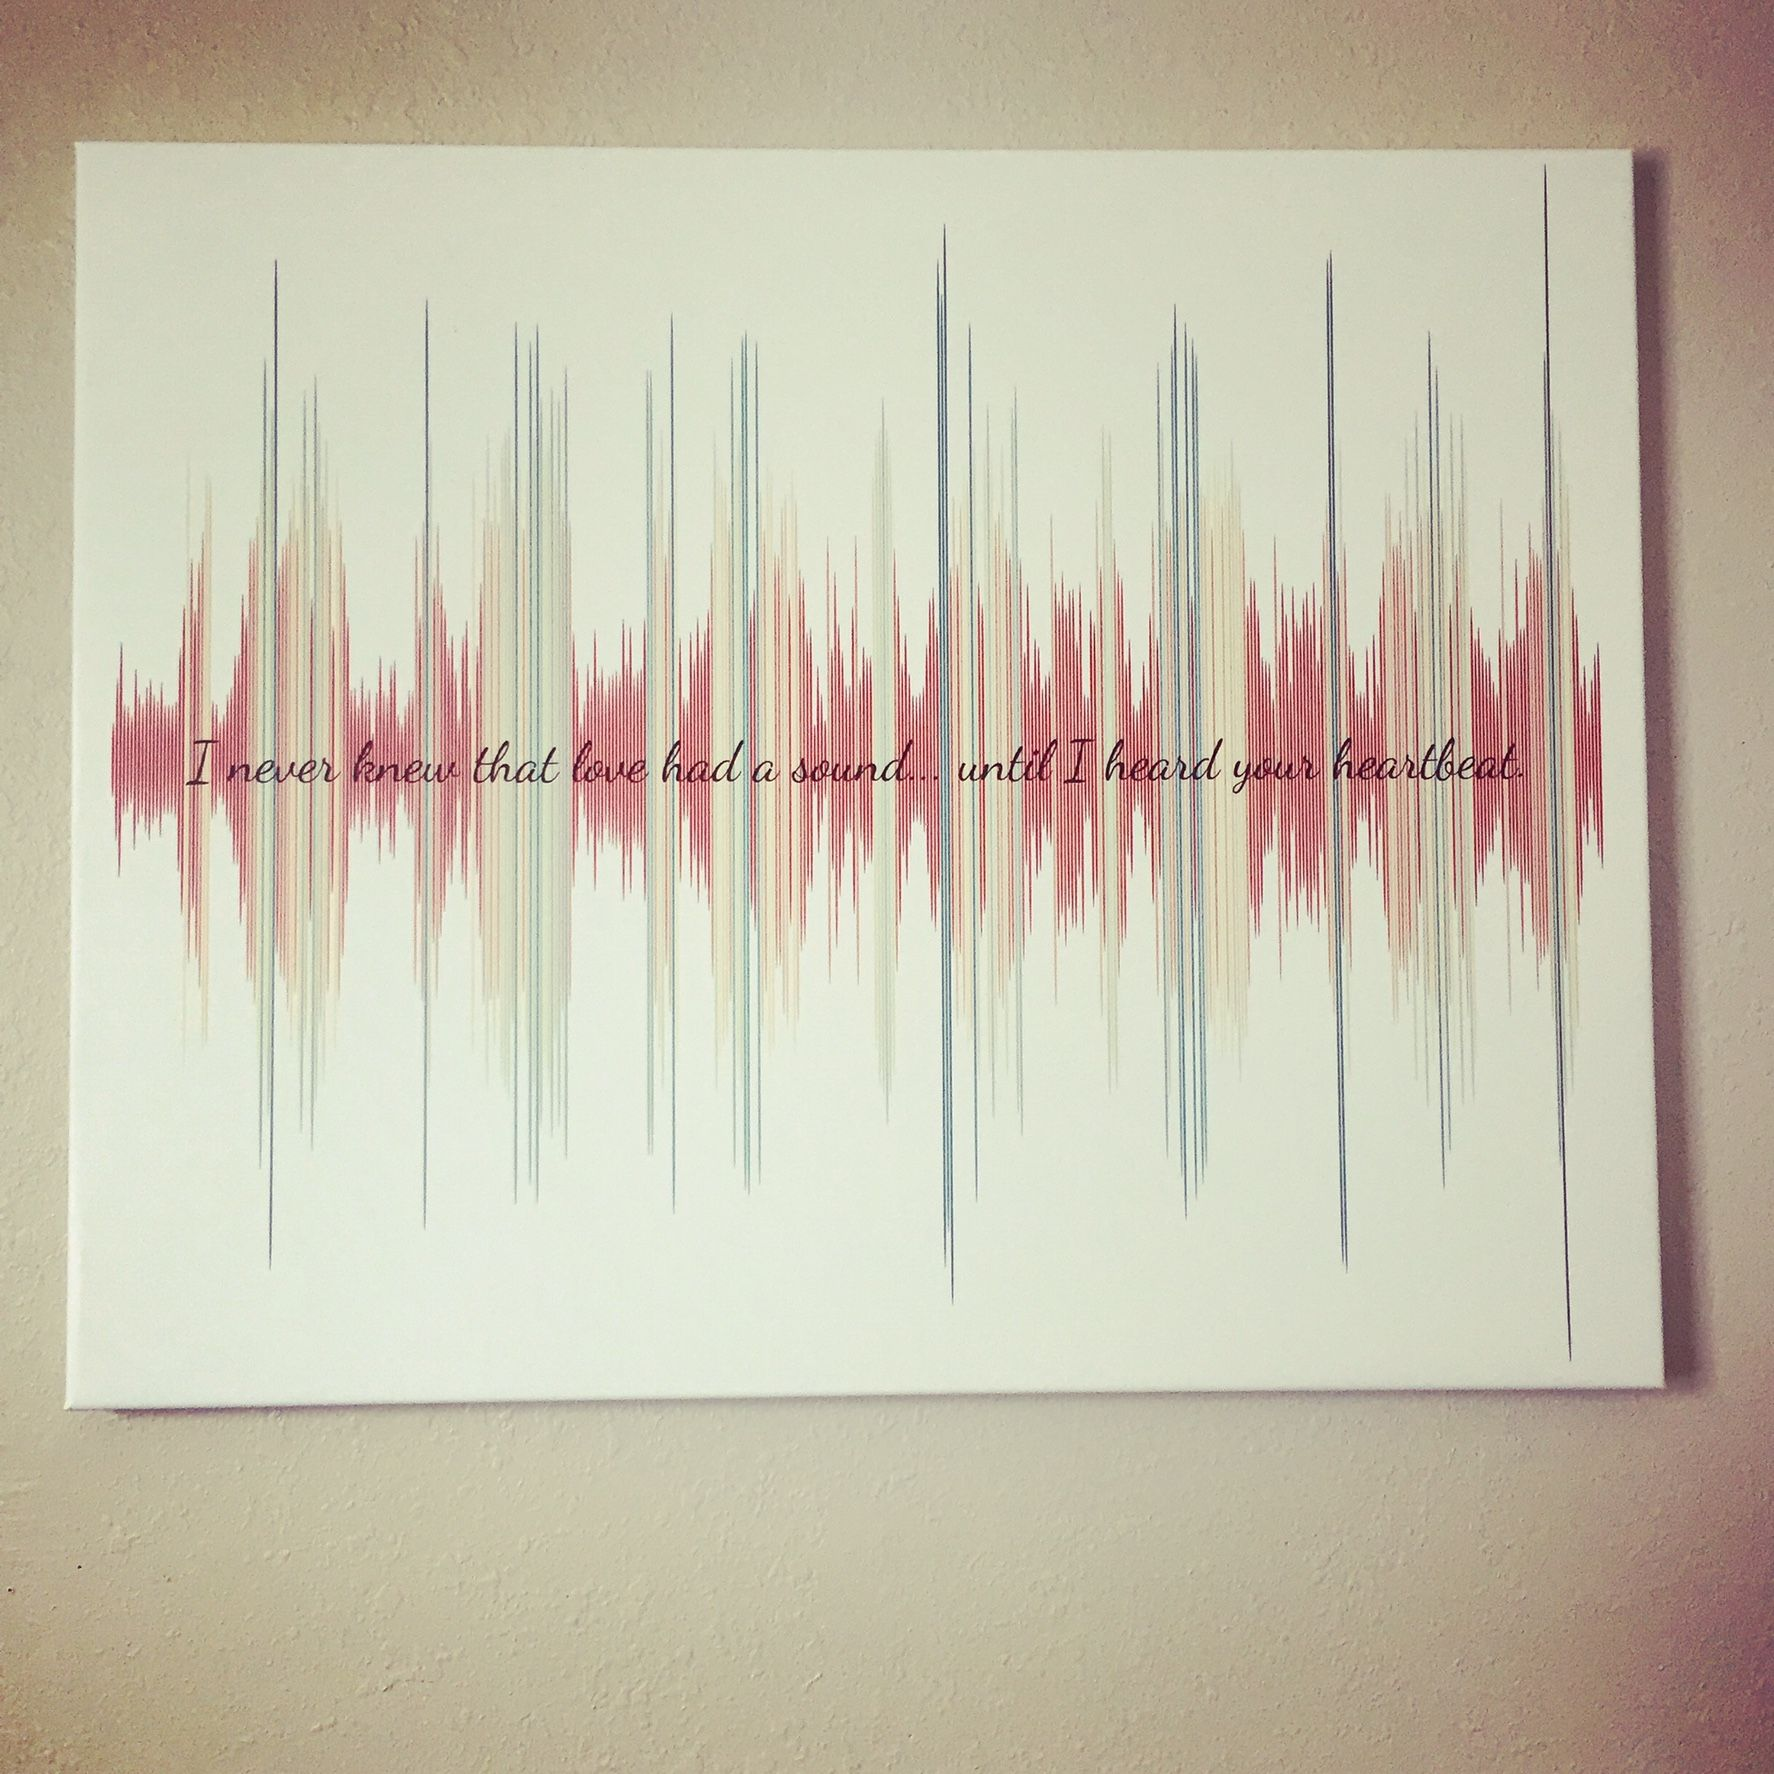 Baby bed heartbeat - It S A Canvas Of Our Baby S Actual Heartbeat The First Time We Heard It I Can T Express How Much I Love This